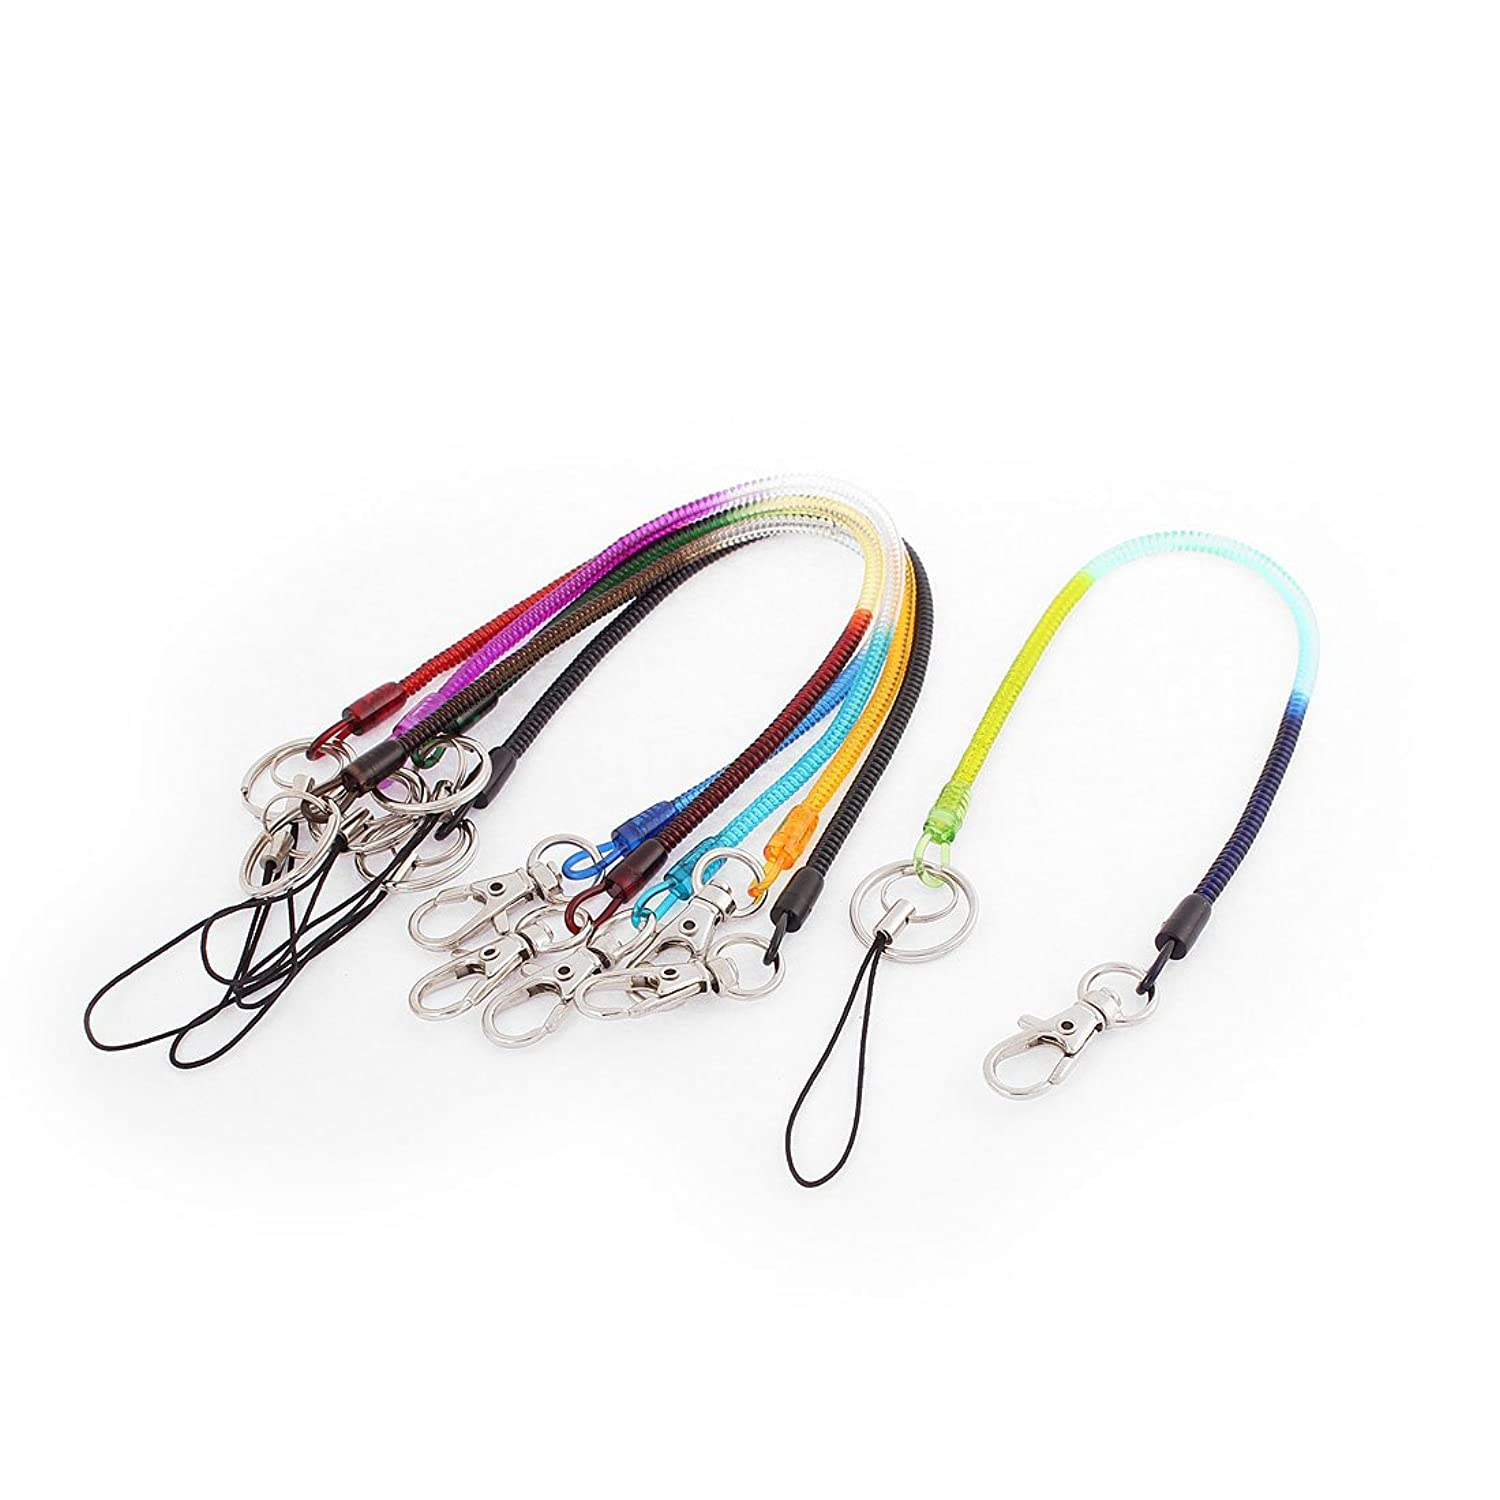 uxcell Lobster Claw Clasp Keychain Strap Sprial Cord 6 Pcs 30cm Multicolor